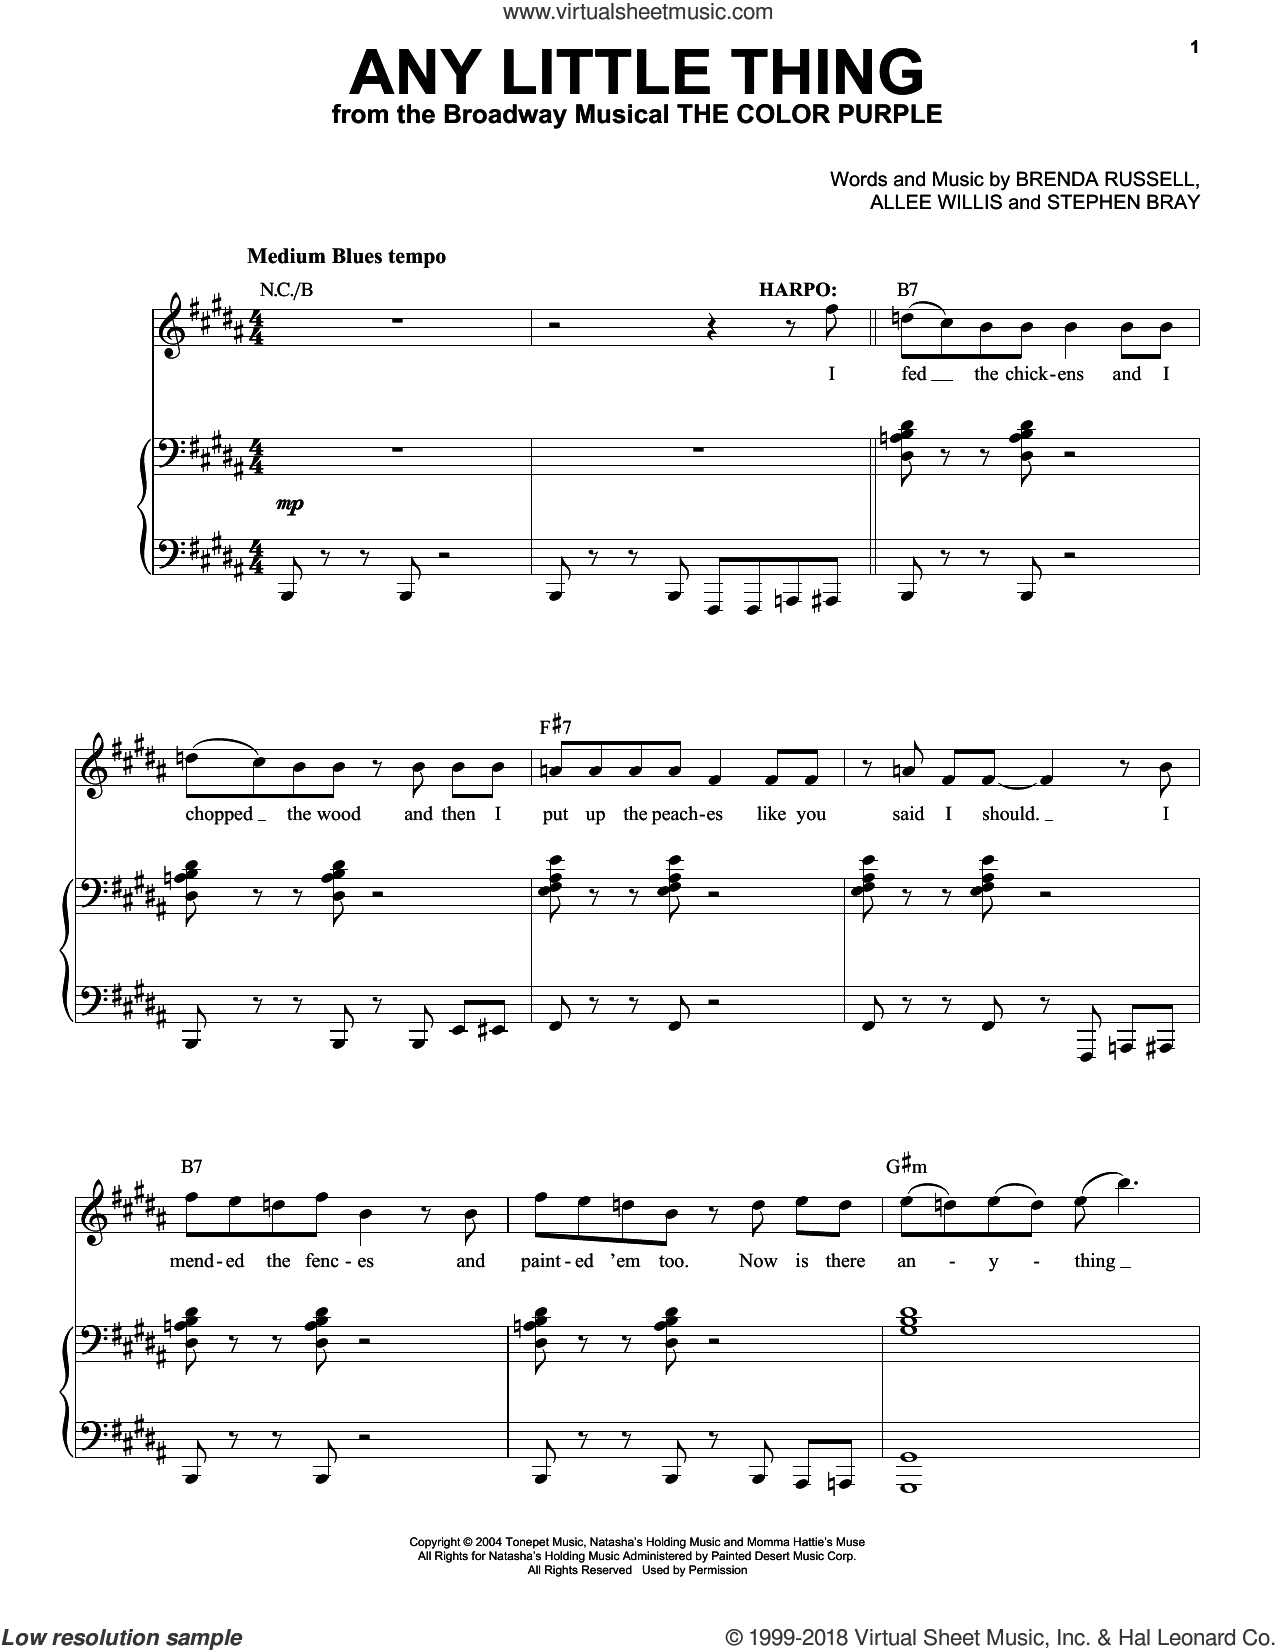 Any Little Thing sheet music for voice and piano by Brenda Russell, Allee Willis and Stephen Bray, intermediate skill level